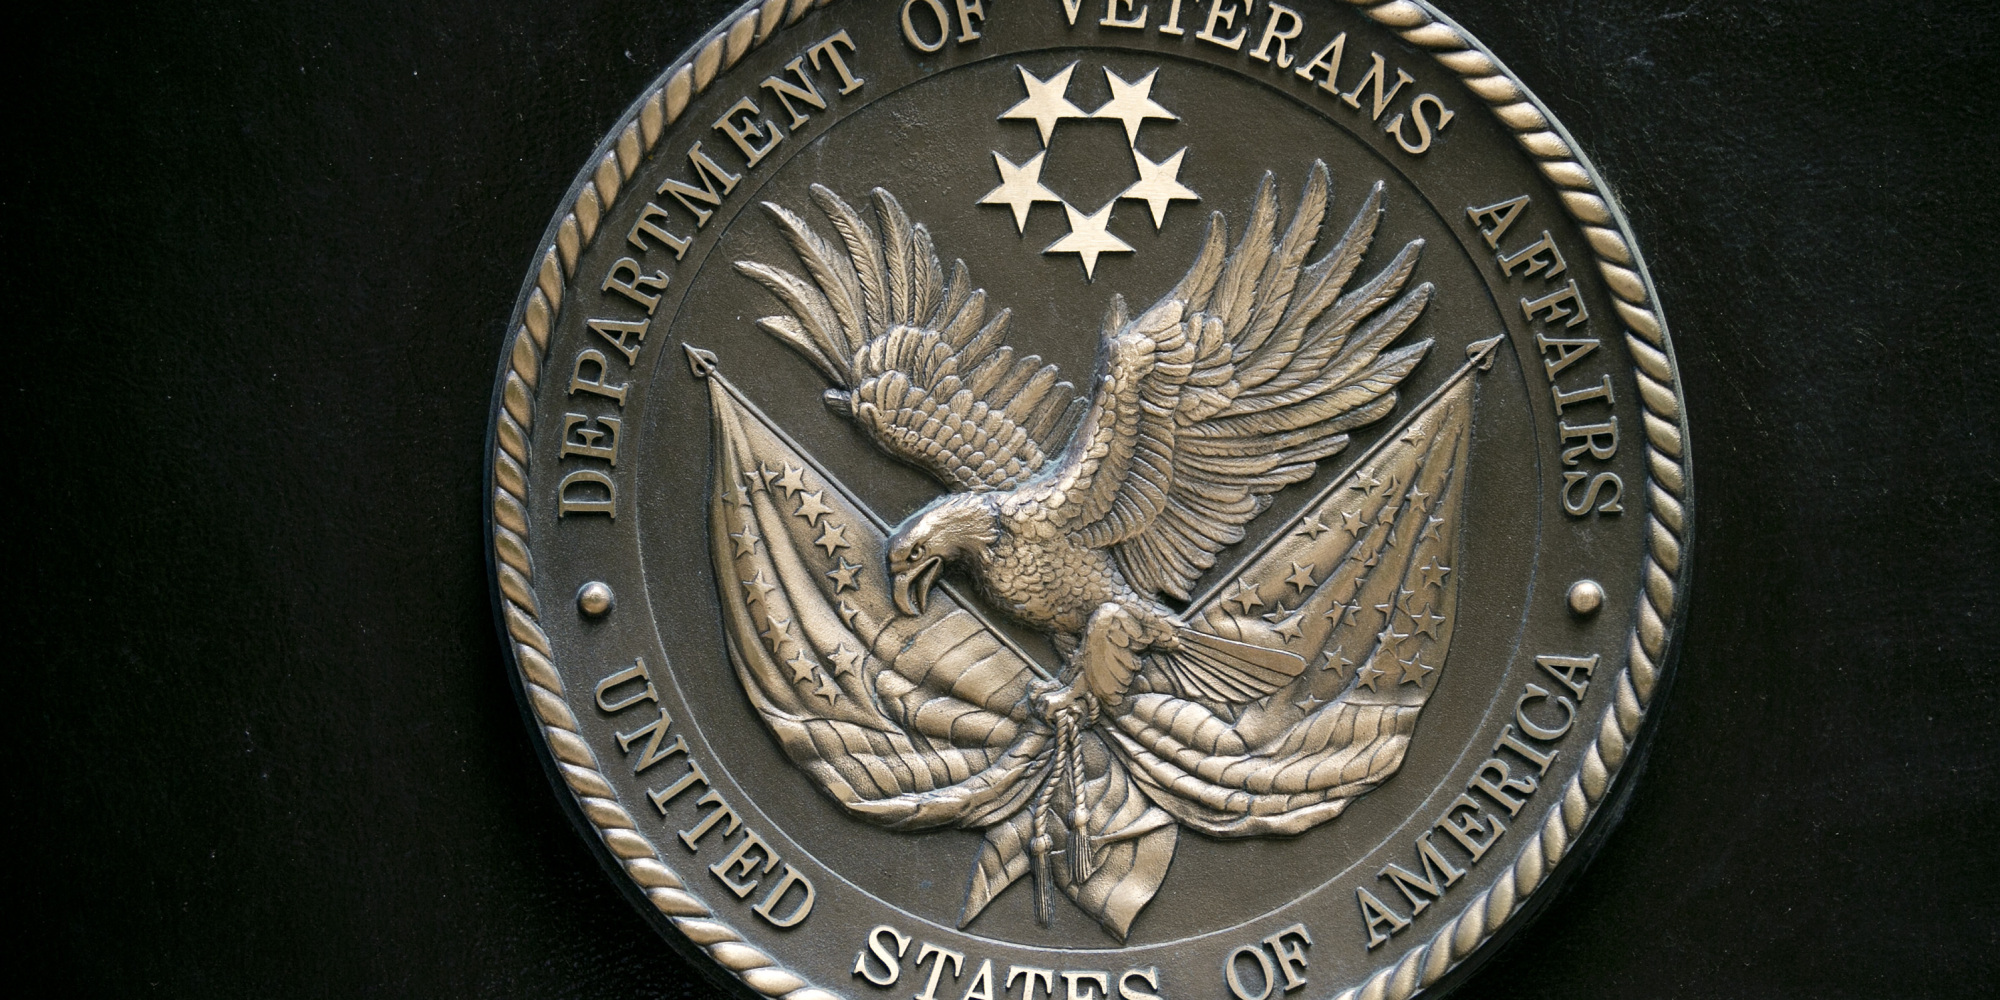 va health care nominee withdraws name from consideration